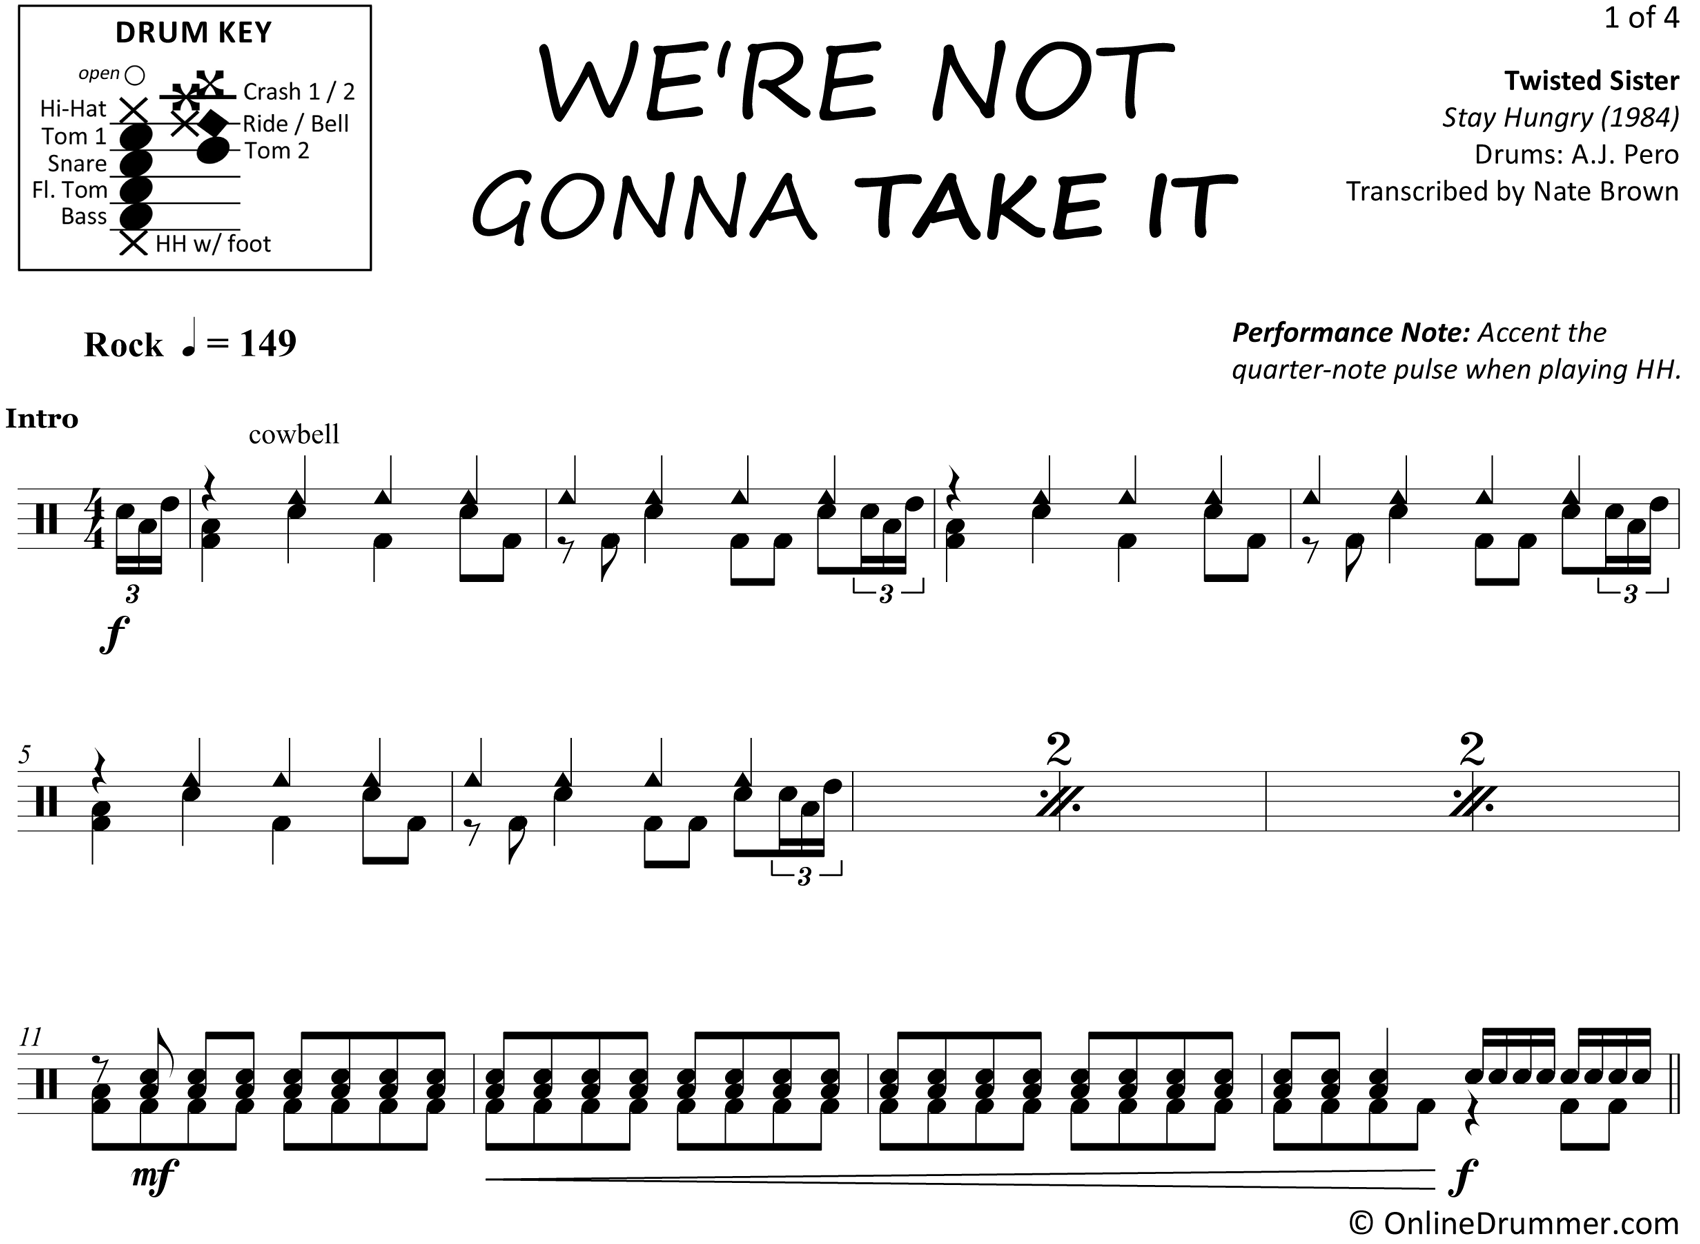 We're Not Gonna Take It - Twisted Sister - Drum Sheet Music